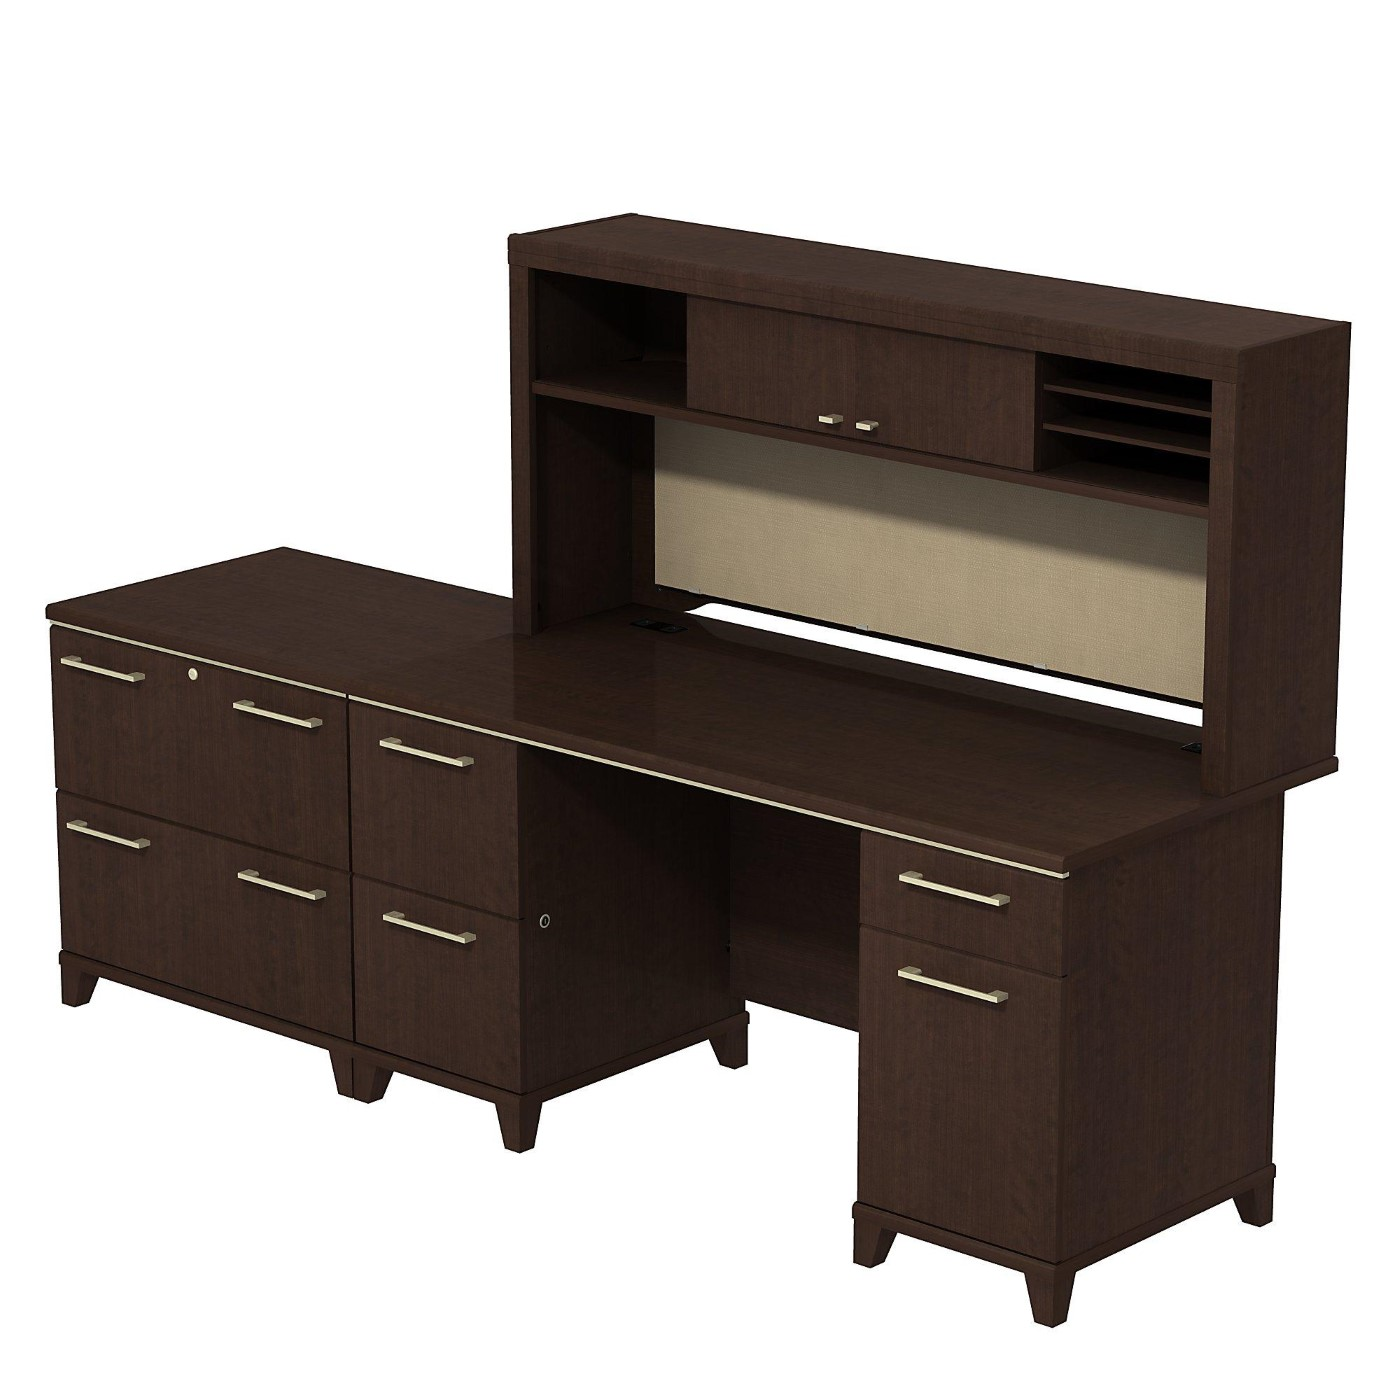 BUSH BUSINESS FURNITURE ENTERPRISE 72W OFFICE DESK WITH HUTCH AND 2 DRAWER LATERAL FILE CABINET. FREE SHIPPING</font></b></font>&#x1F384<font color=red><b>ERGONOMICHOME HOLIDAY SALE - ENDS DEC. 17, 2019</b></font>&#x1F384